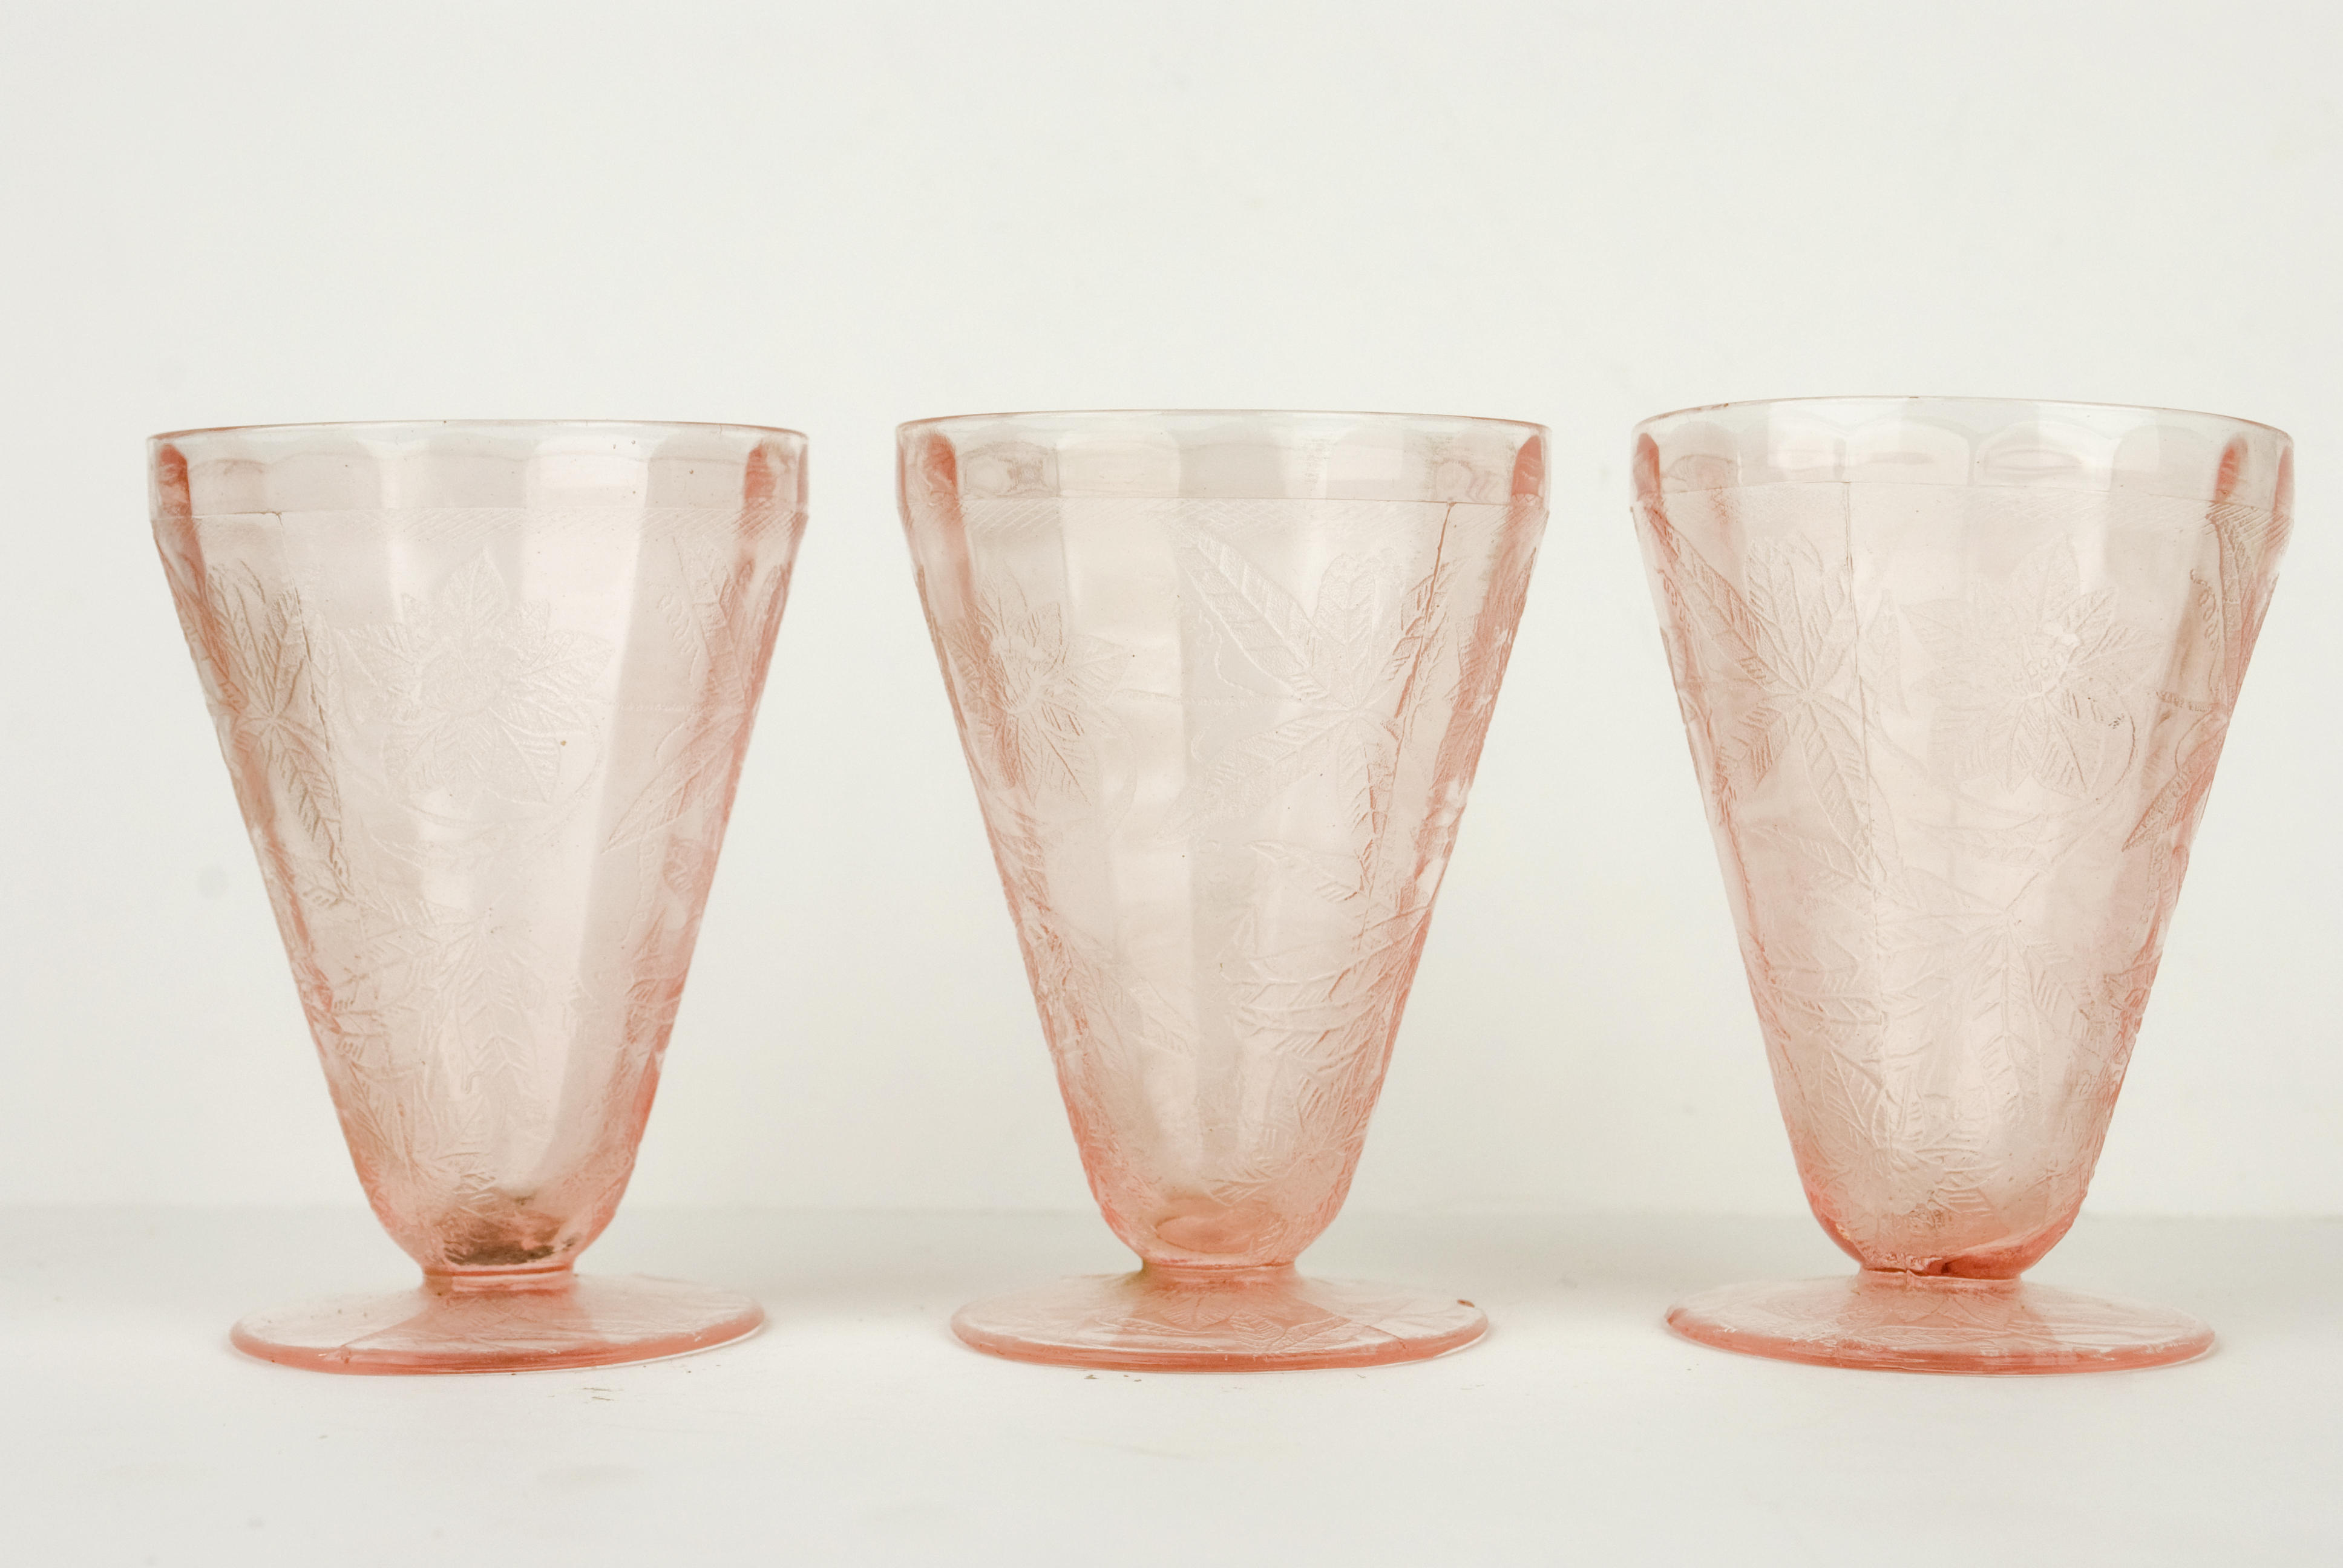 Pink depression glass photo